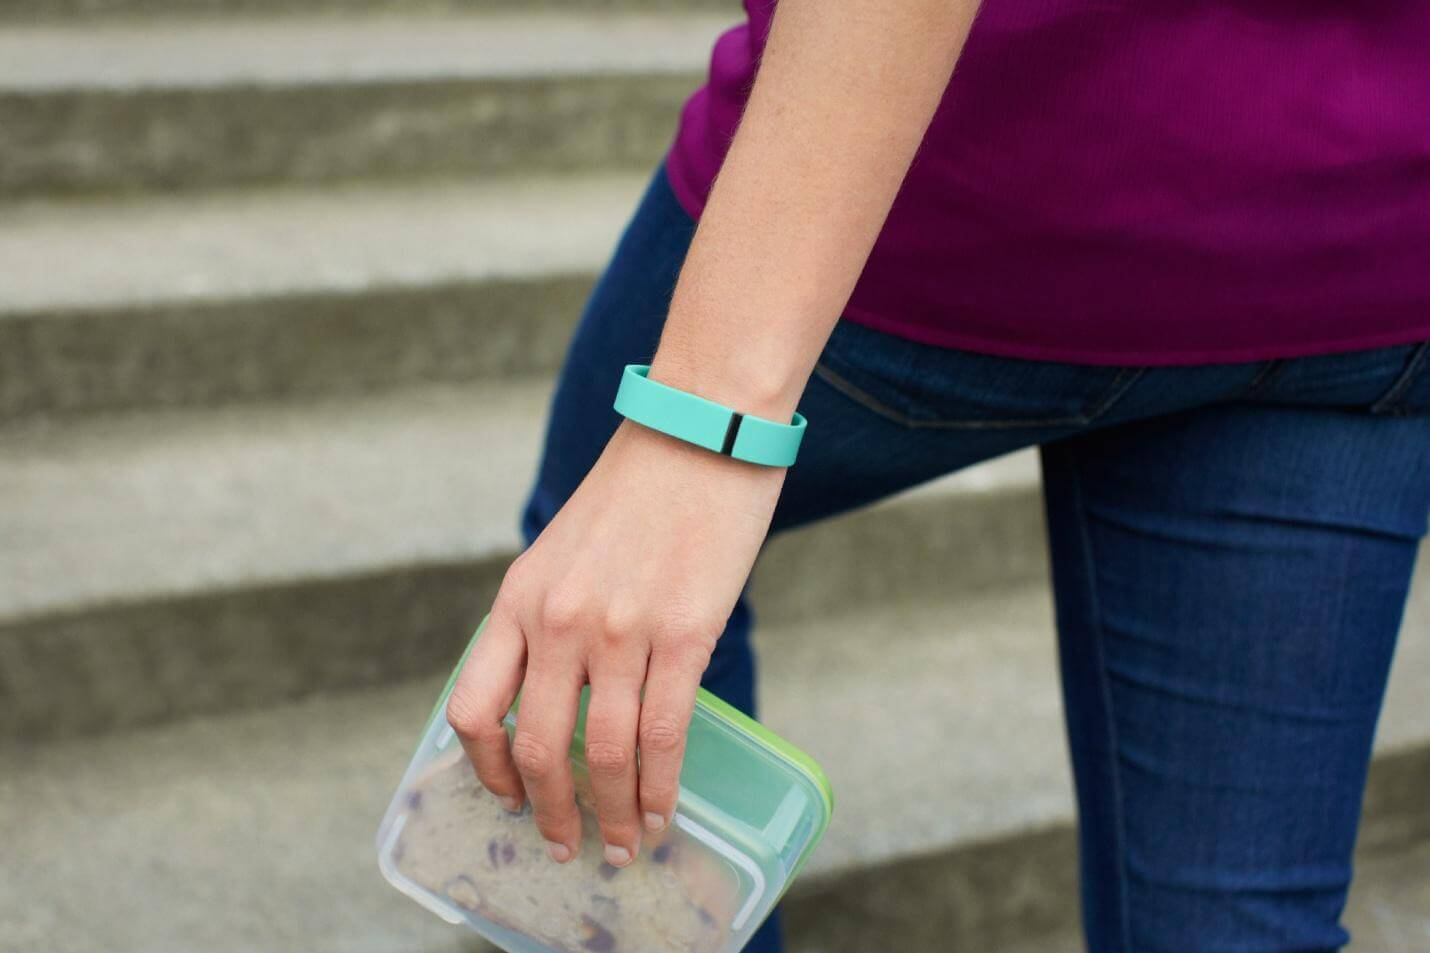 How To Select The Best Material For Your Fitbit Flex Bands